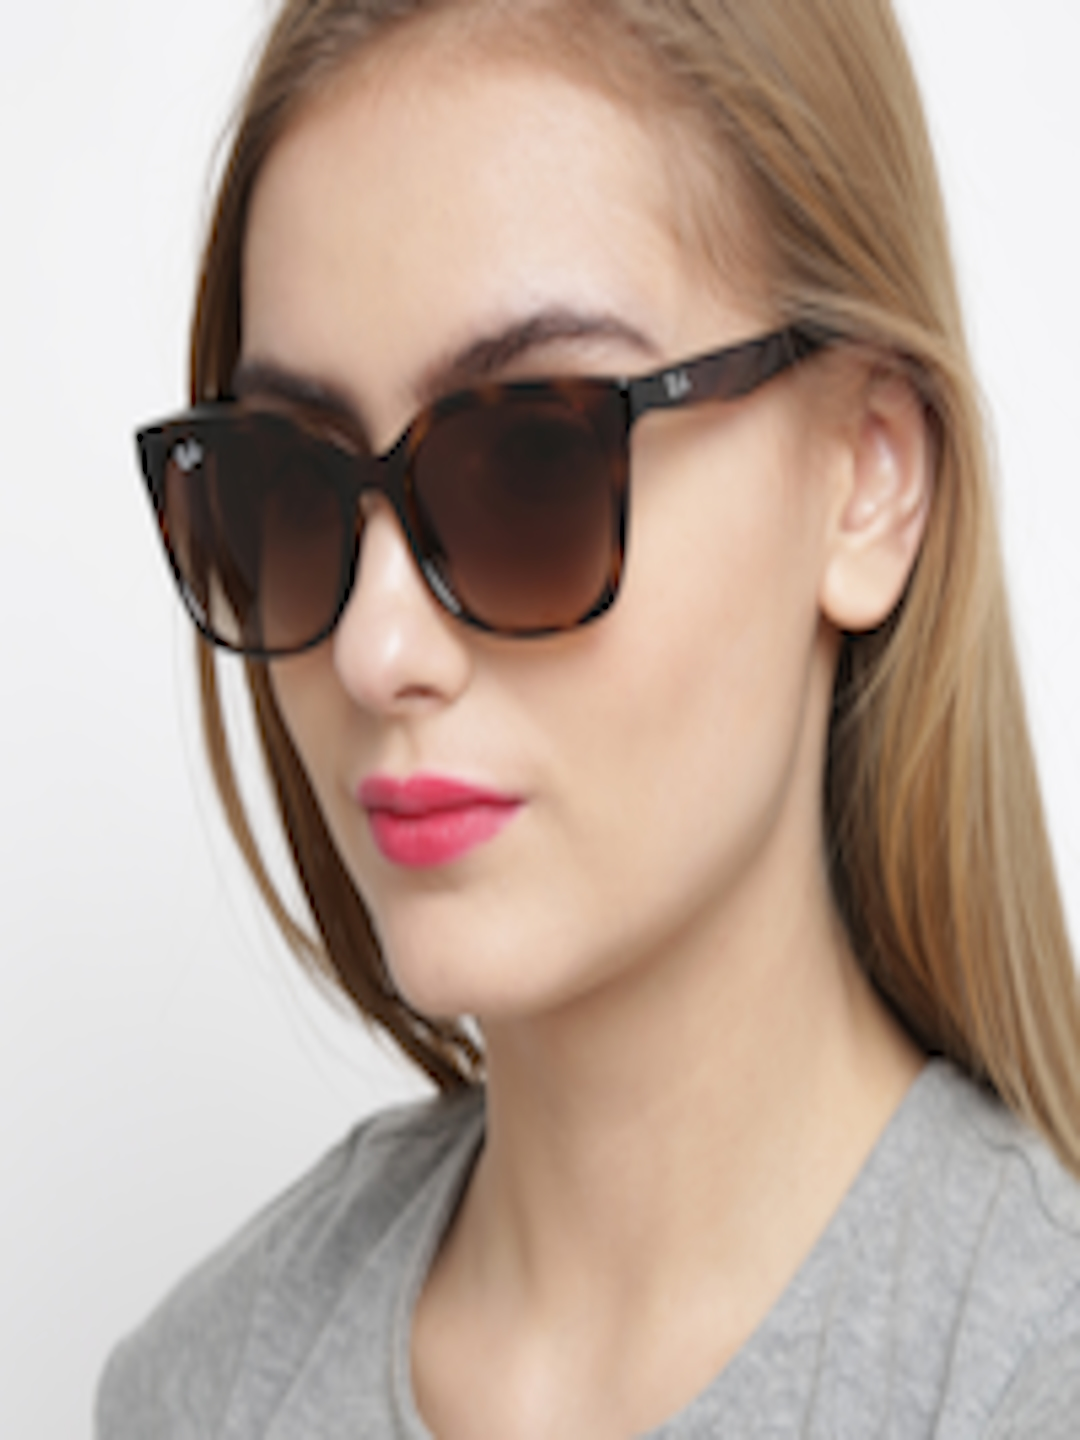 5606650da5 Buy Ray Ban Women Printed Oval Sunglasses 0RB7060I710 1354 - Sunglasses for  Women 1494406